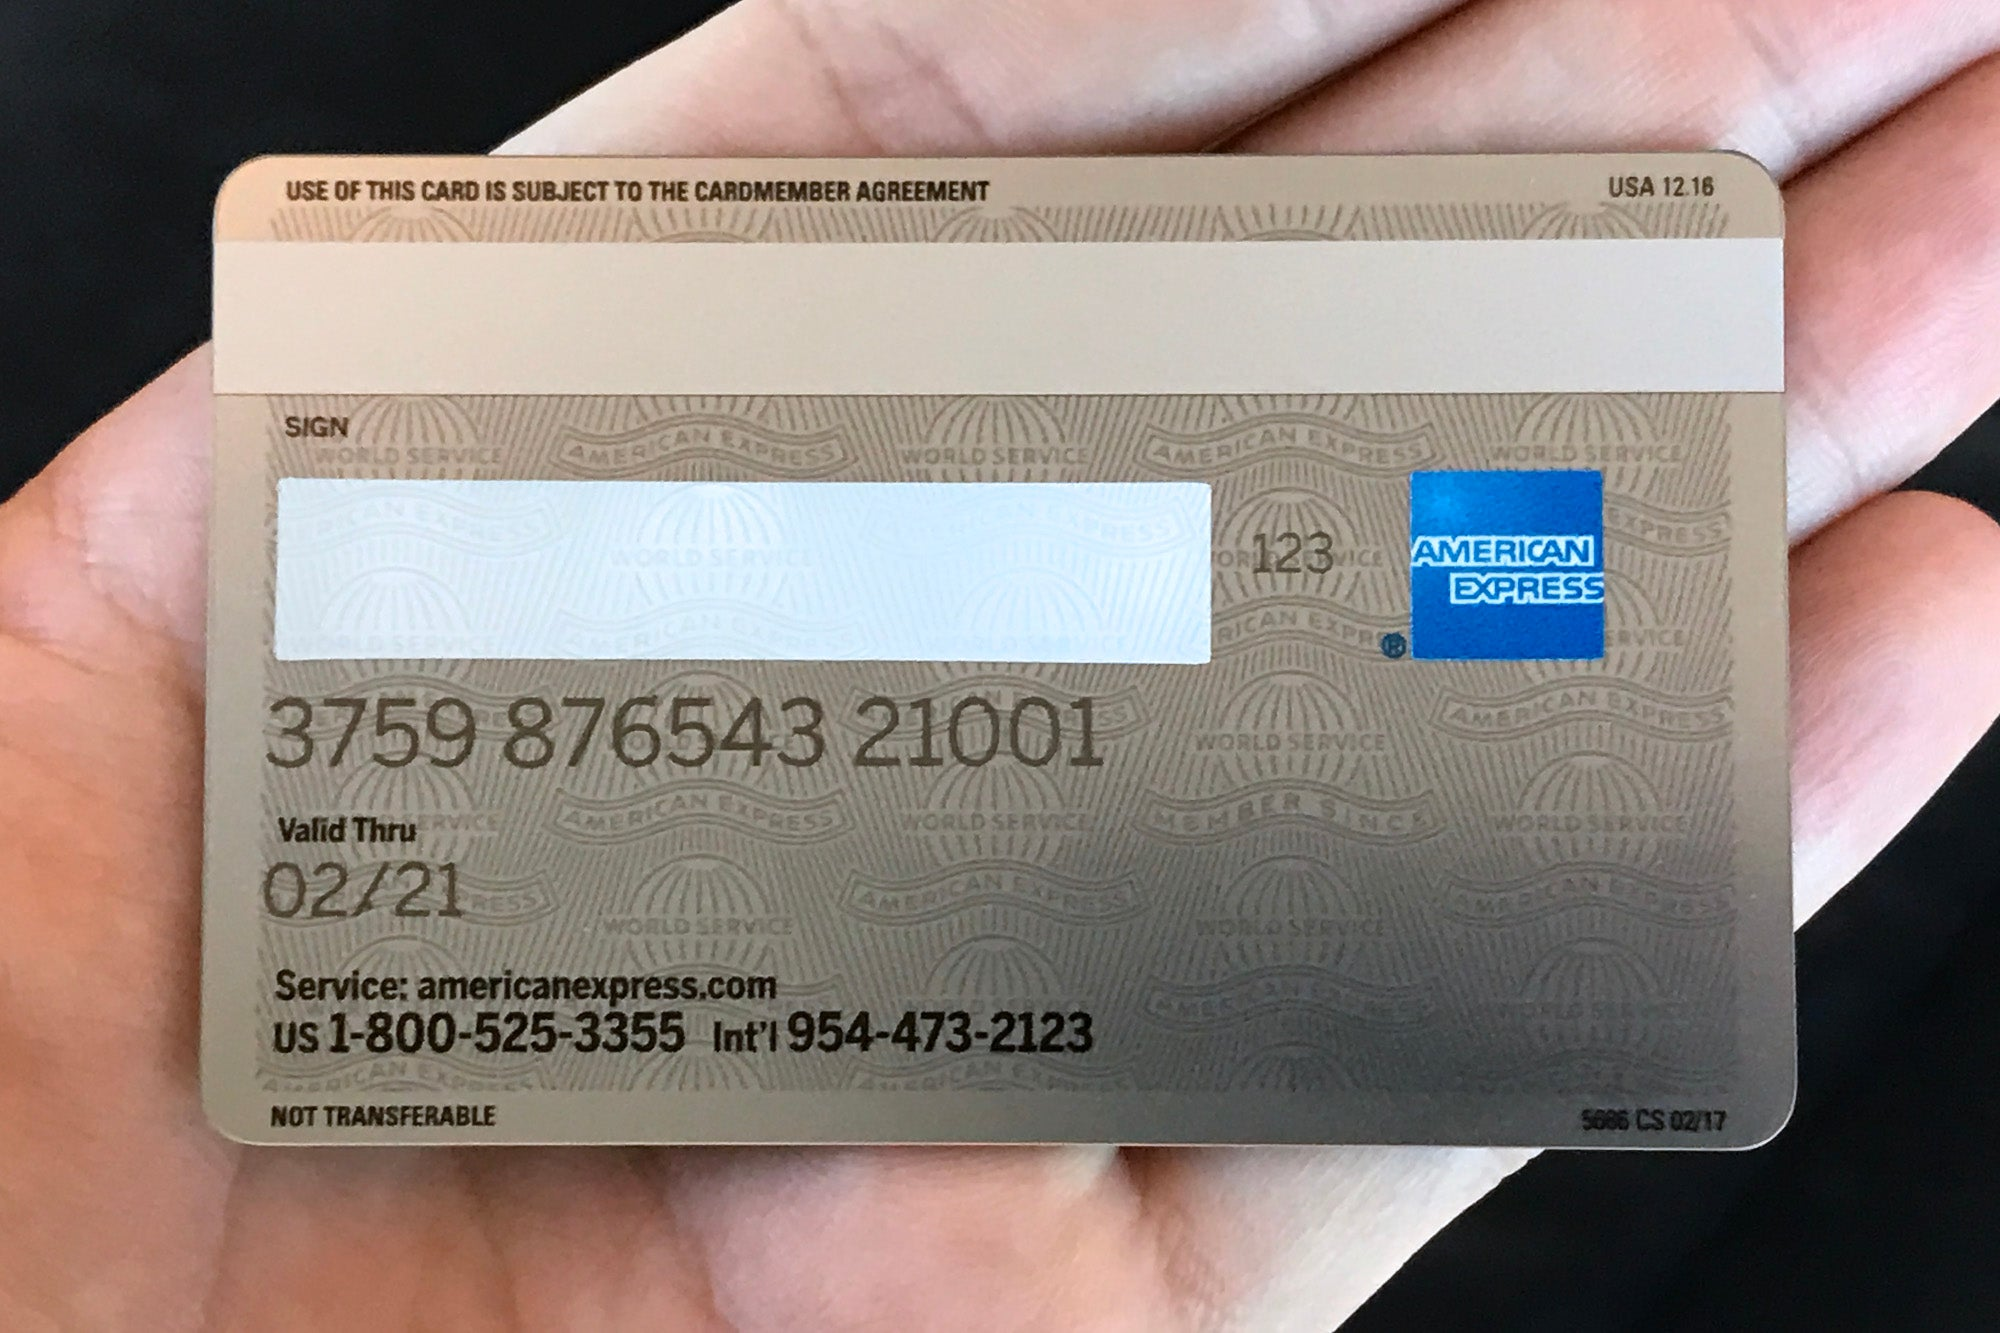 Amex Platinum: 5x on Hotels, $200 Uber Credit, Higher Fee